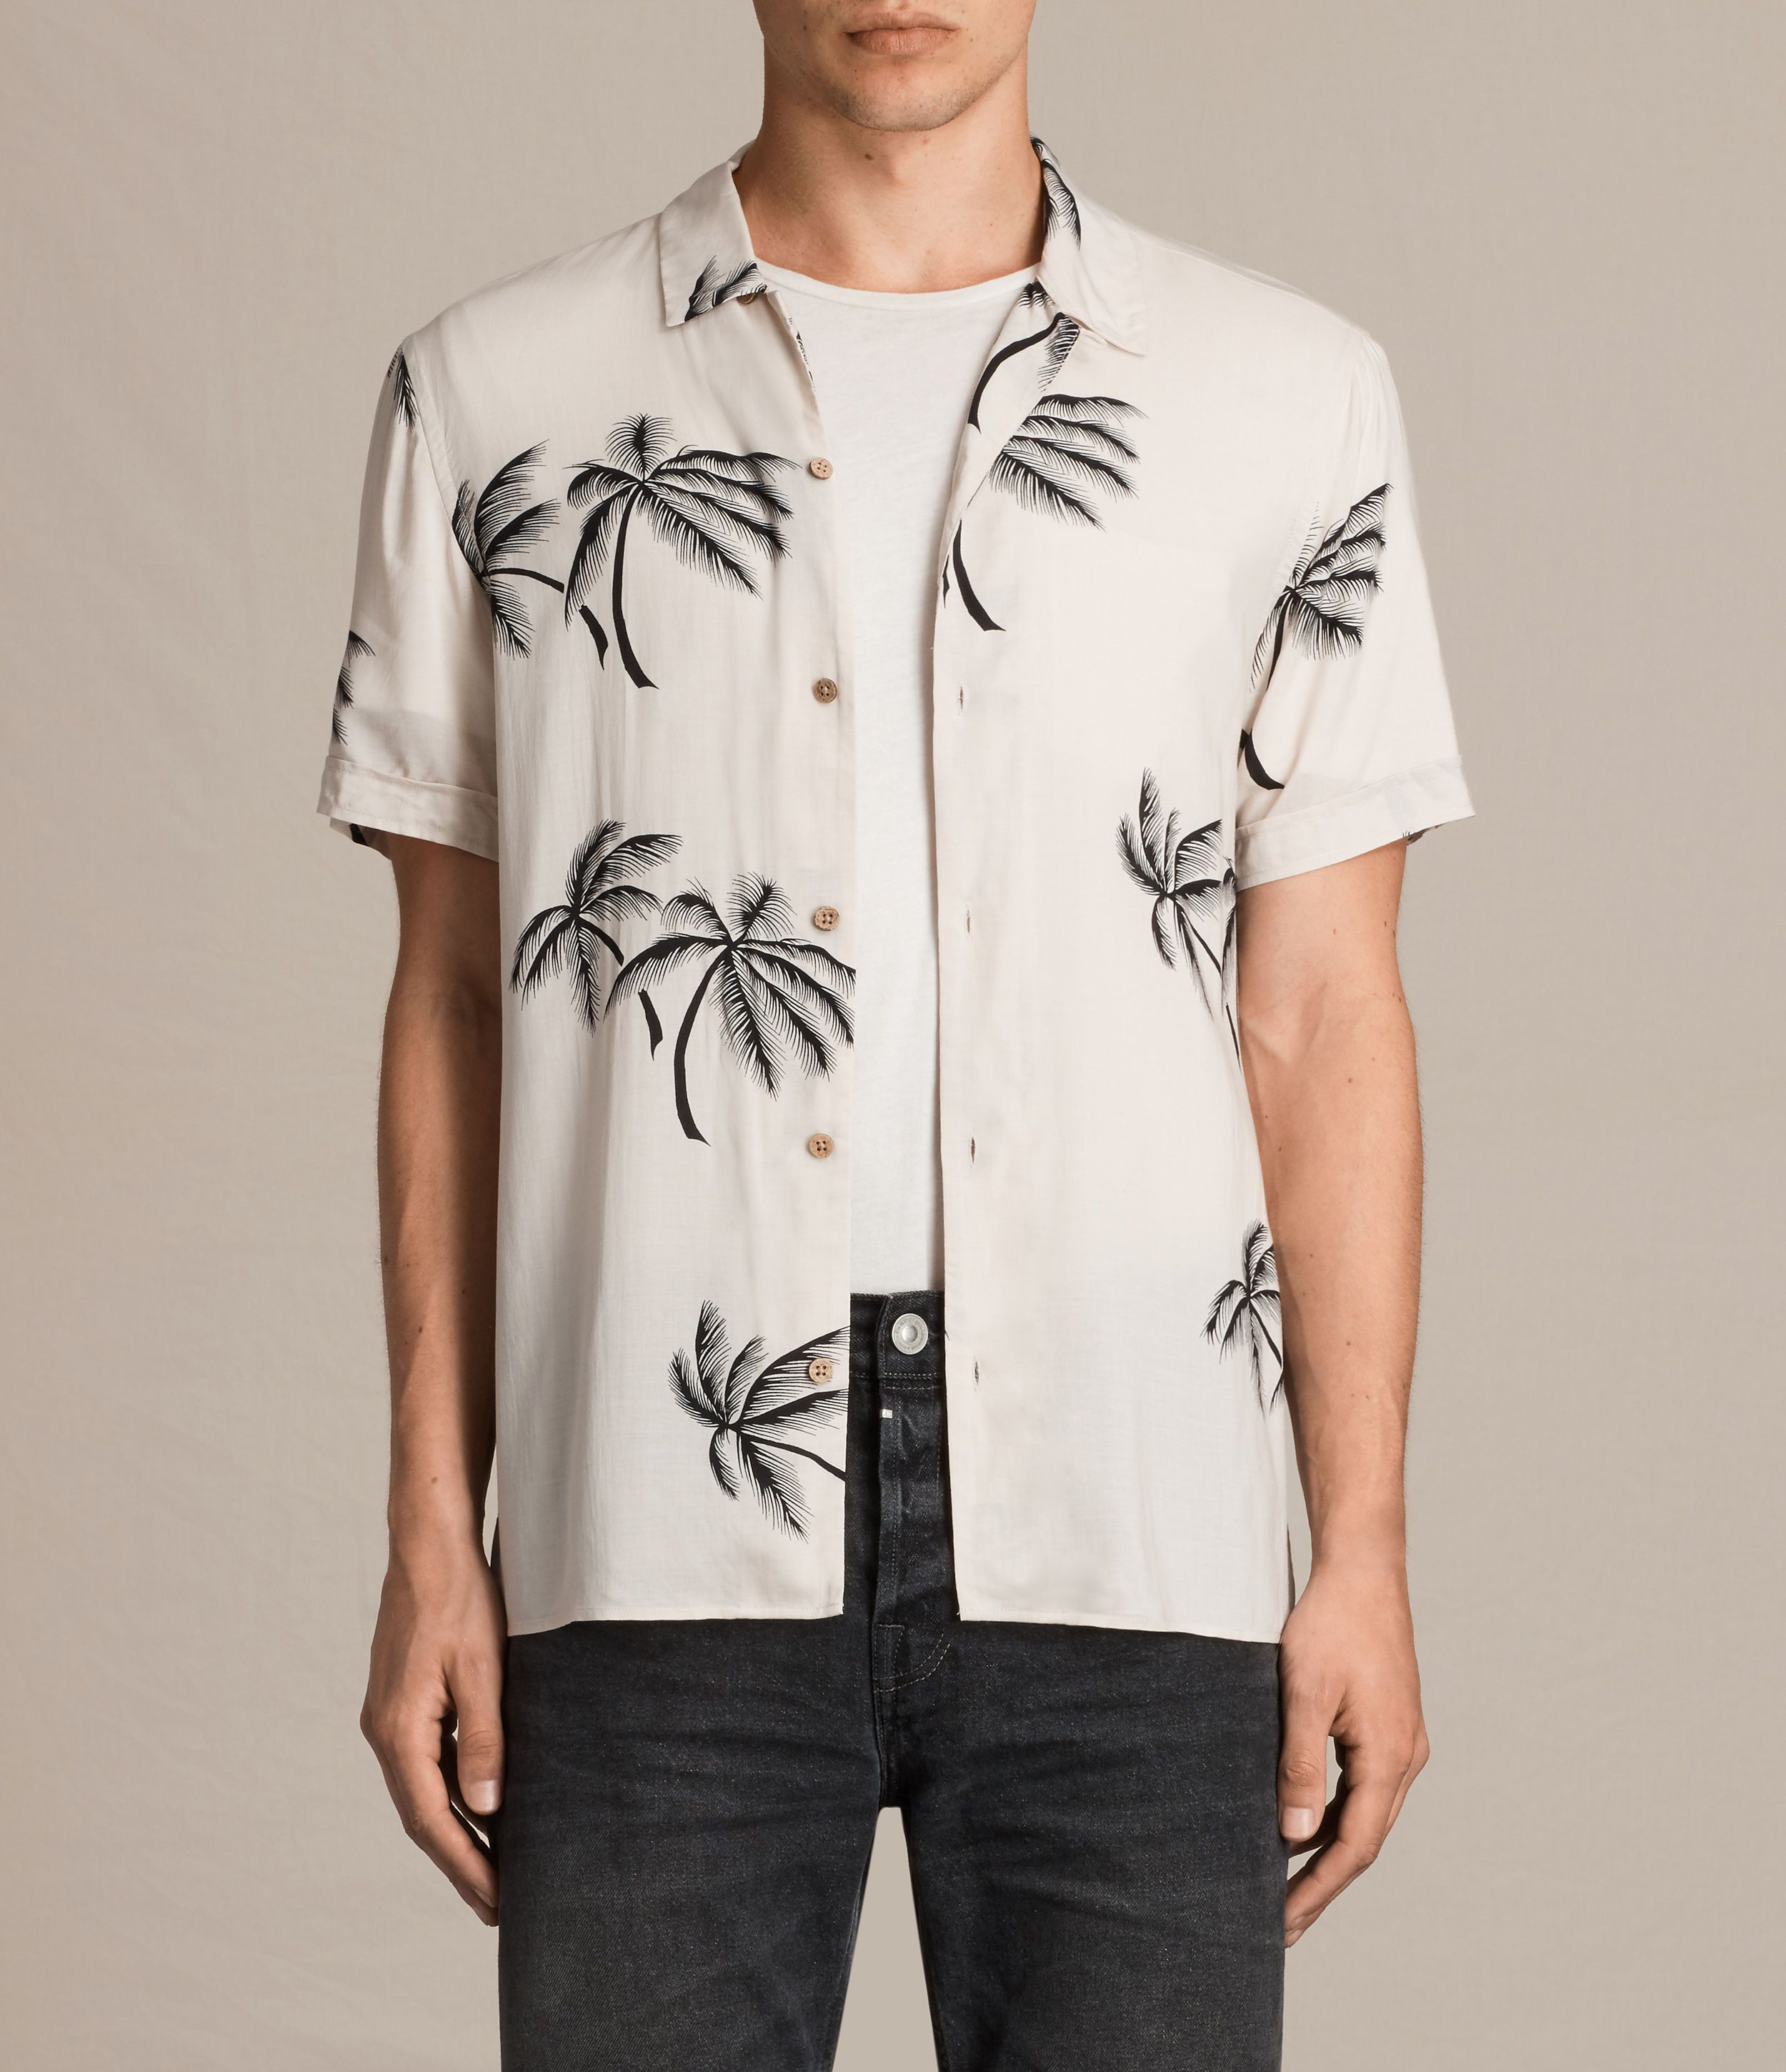 f7a68f00 AllSaints New Arrivals: Offshore Short Sleeve Shirt. The Offshore Shirt has  a statement monochrome palm tree print. Cut from a super lightweight fabric  with ...